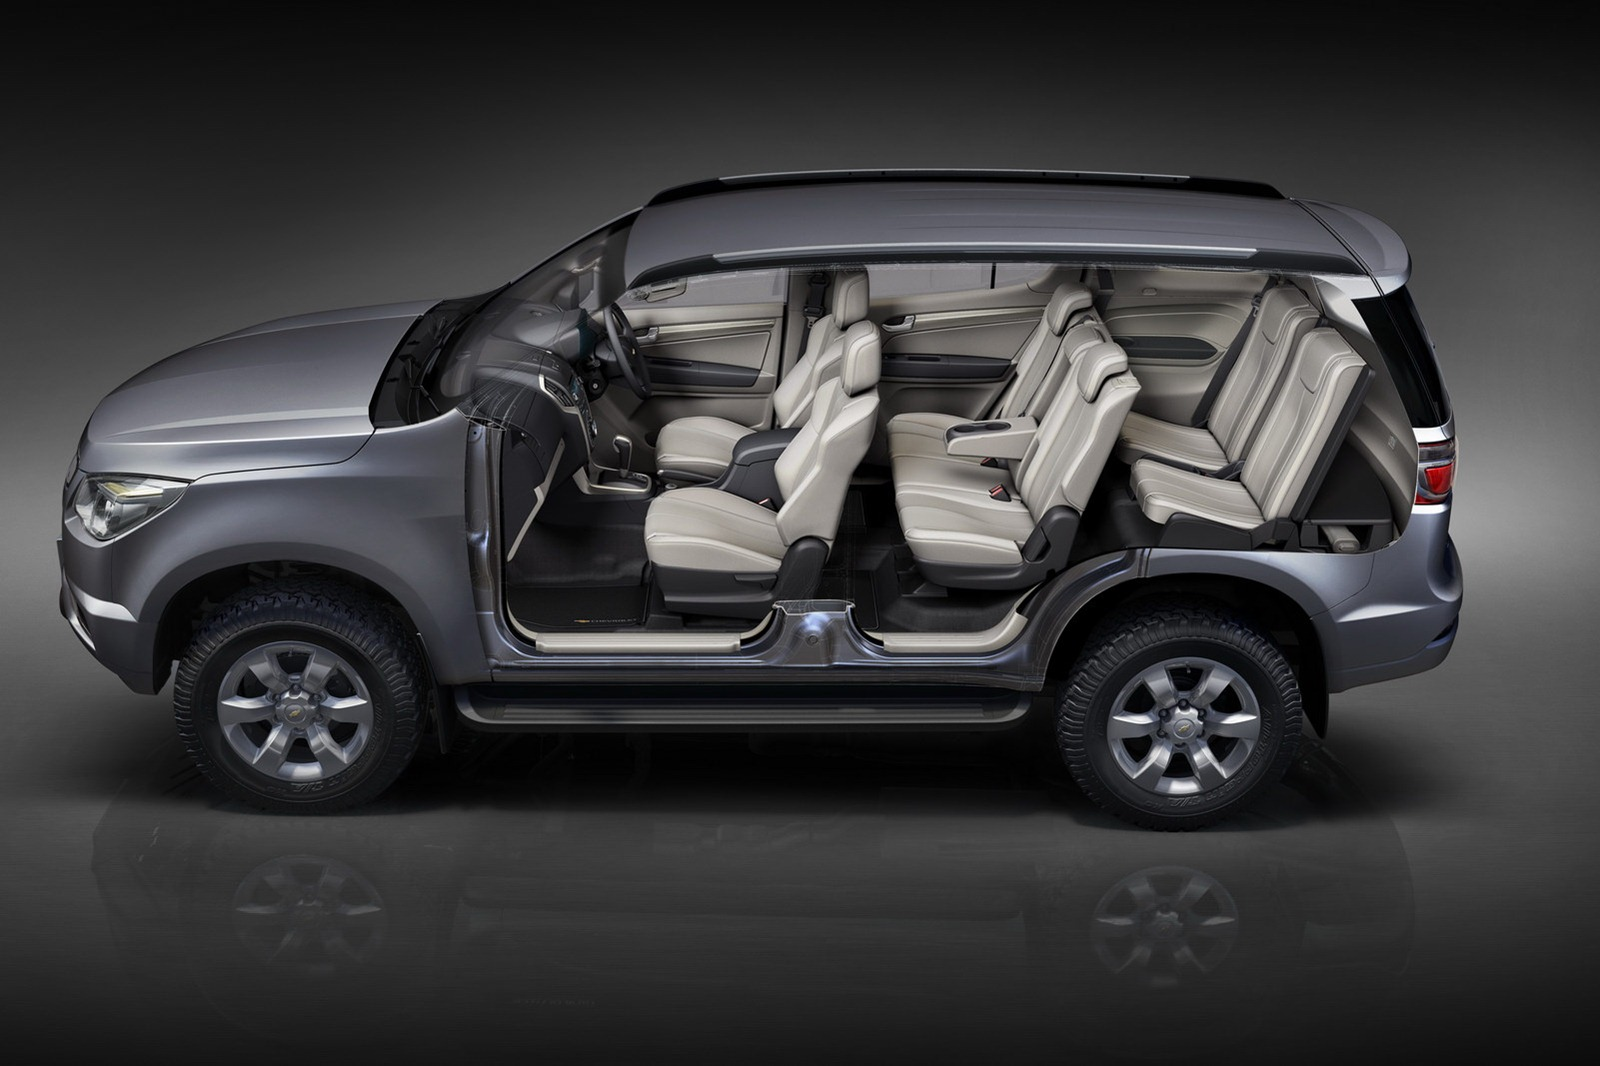 New 2013 chevrolet trailblazer presented us launch uncertain autoevolution